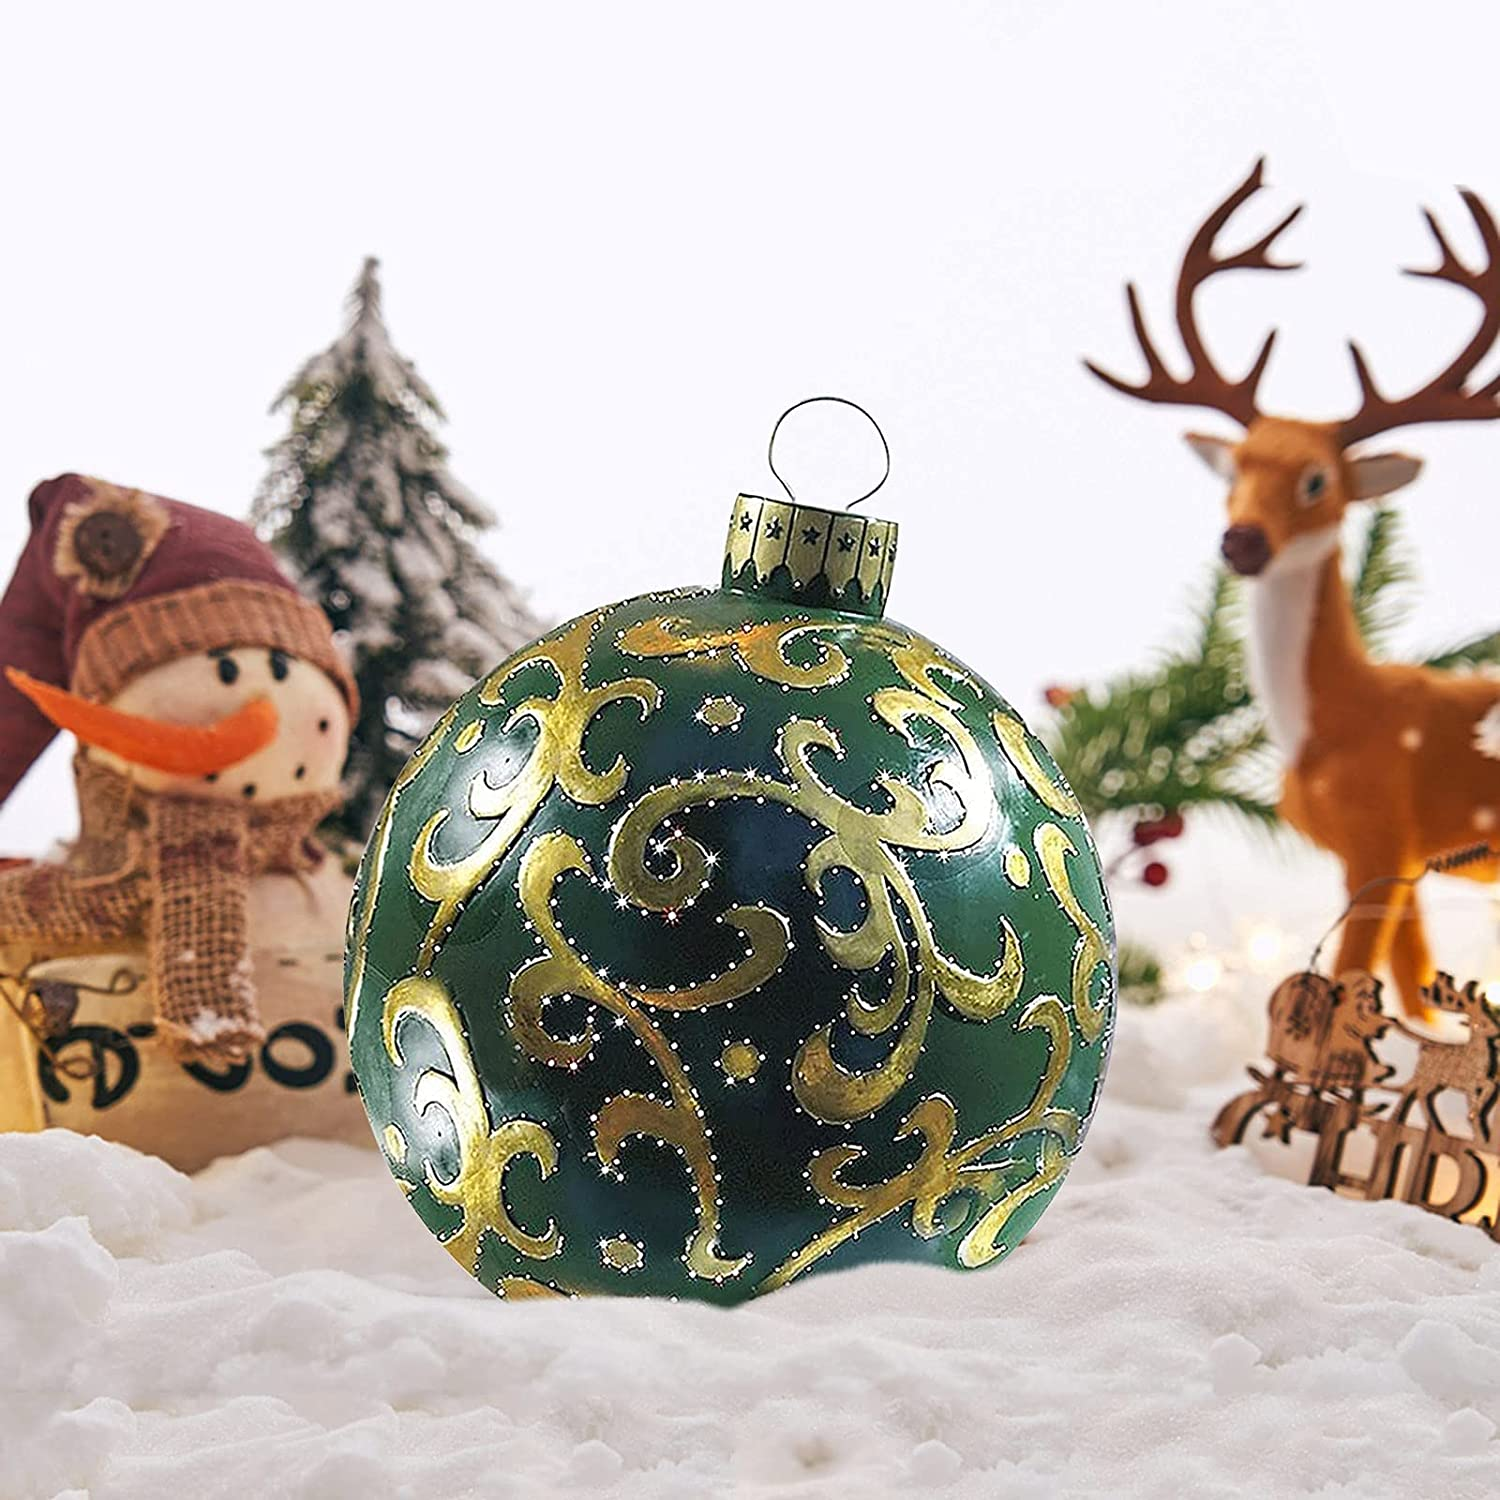 Buy Christmas Inflatable Baubles Sale Clearance, 20cm Christmas ...